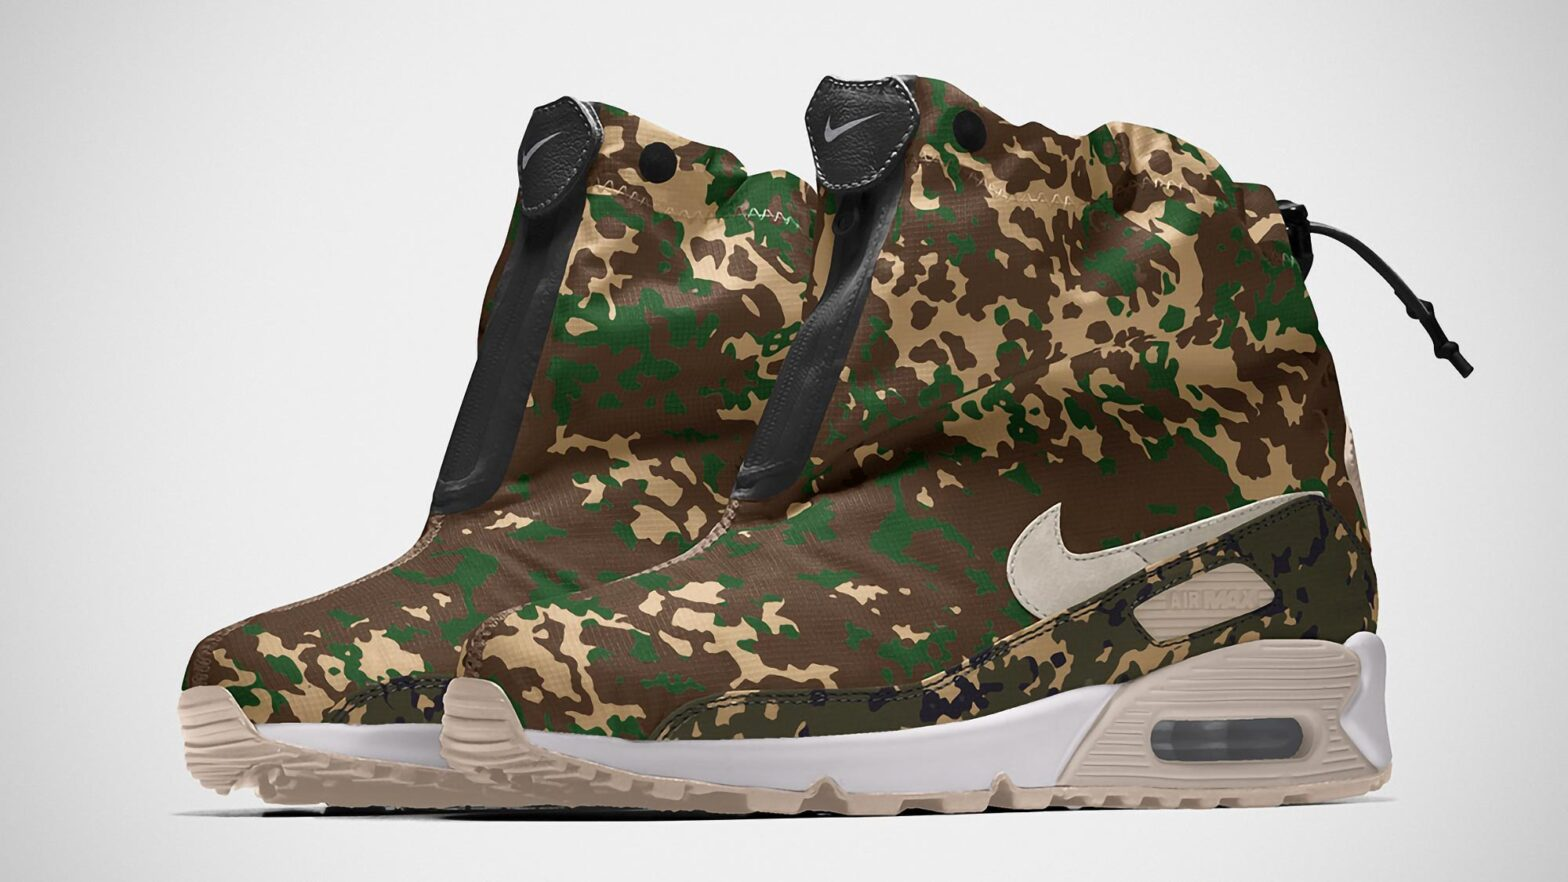 Nike Air Max 90 Unlocked By You Sneakers